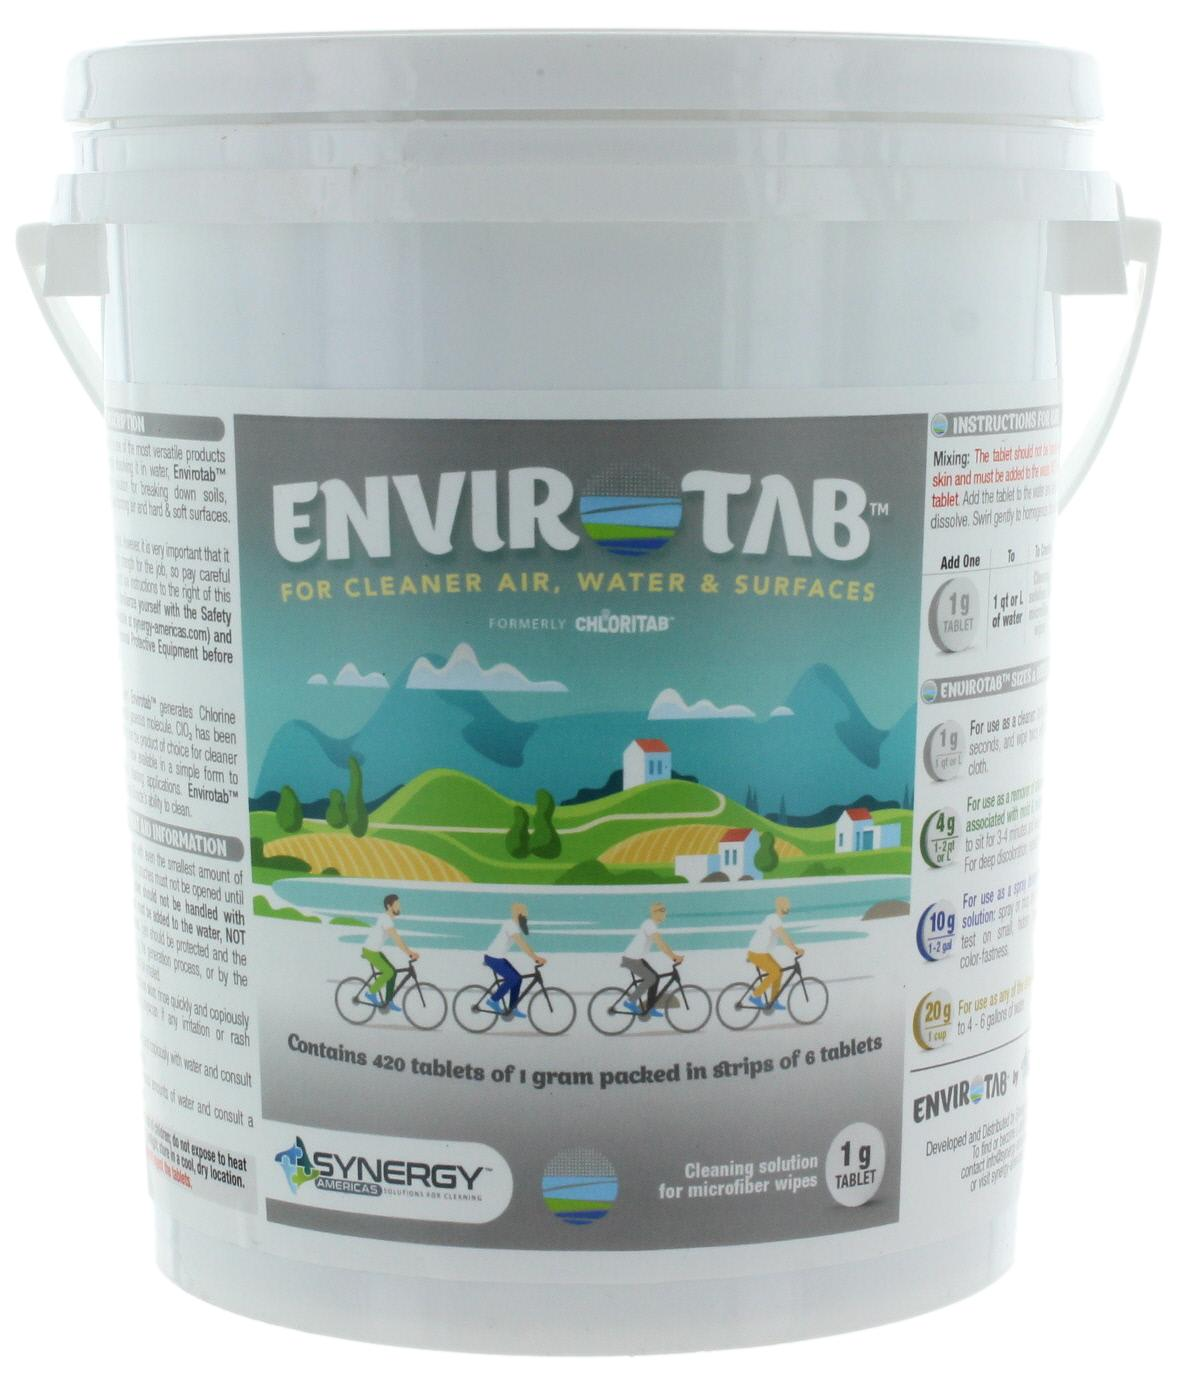 Envirotab for Cleaning, 1g Tablets x 420 Pieces